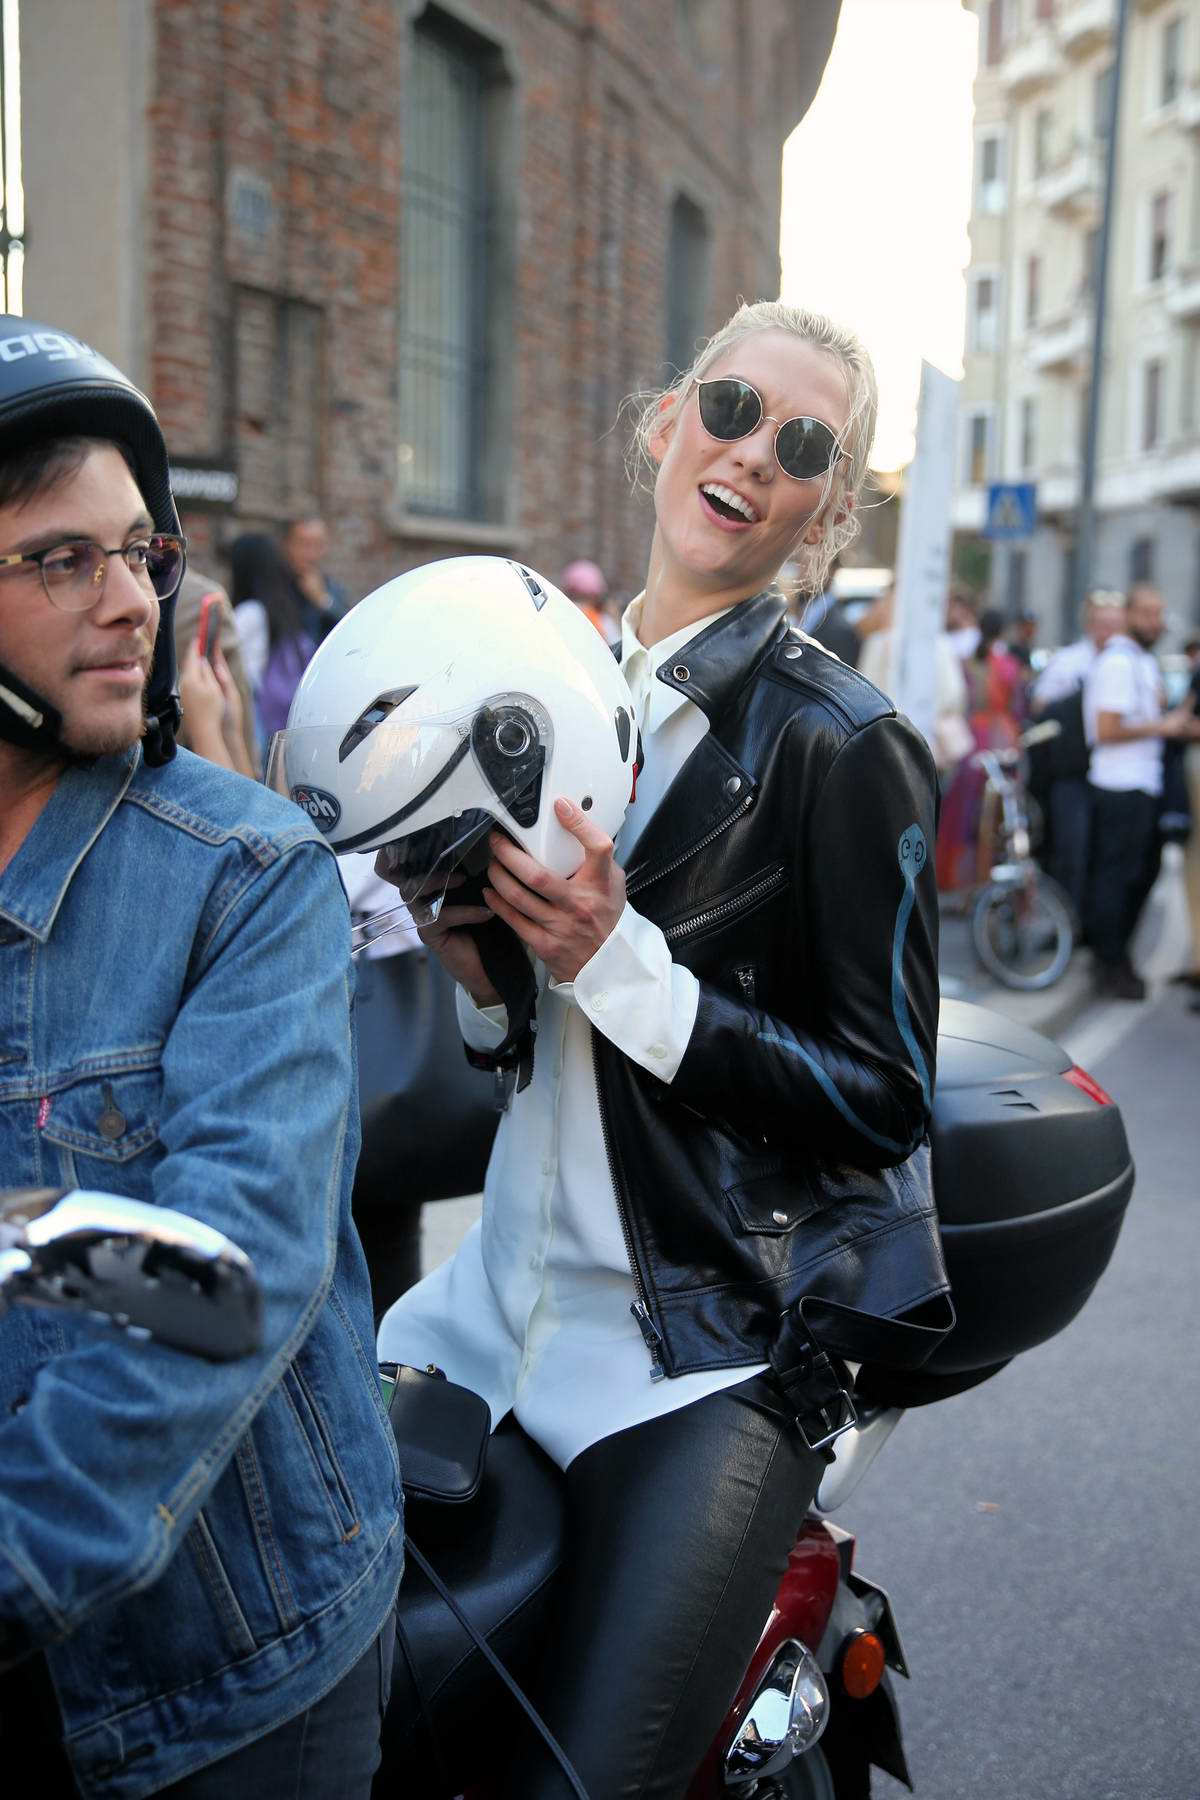 Karlie Kloss rides off on a motorcycle after walking the runway at Alberto Ferretti, spring summer 2018 during Milan Fashion Week, Italy